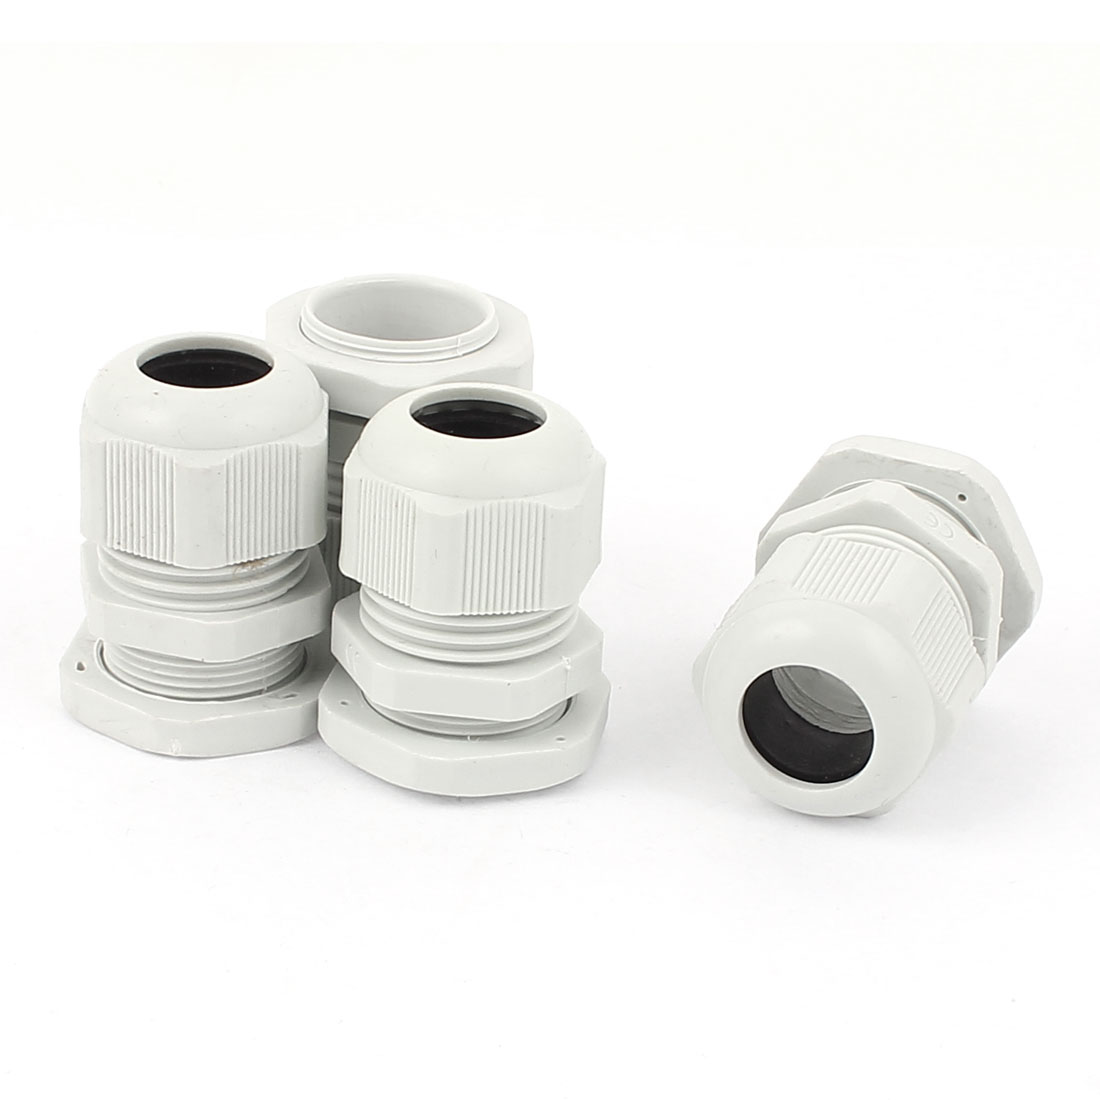 4pcs Waterproof PG21 13-18mm Cable Gland Connector White